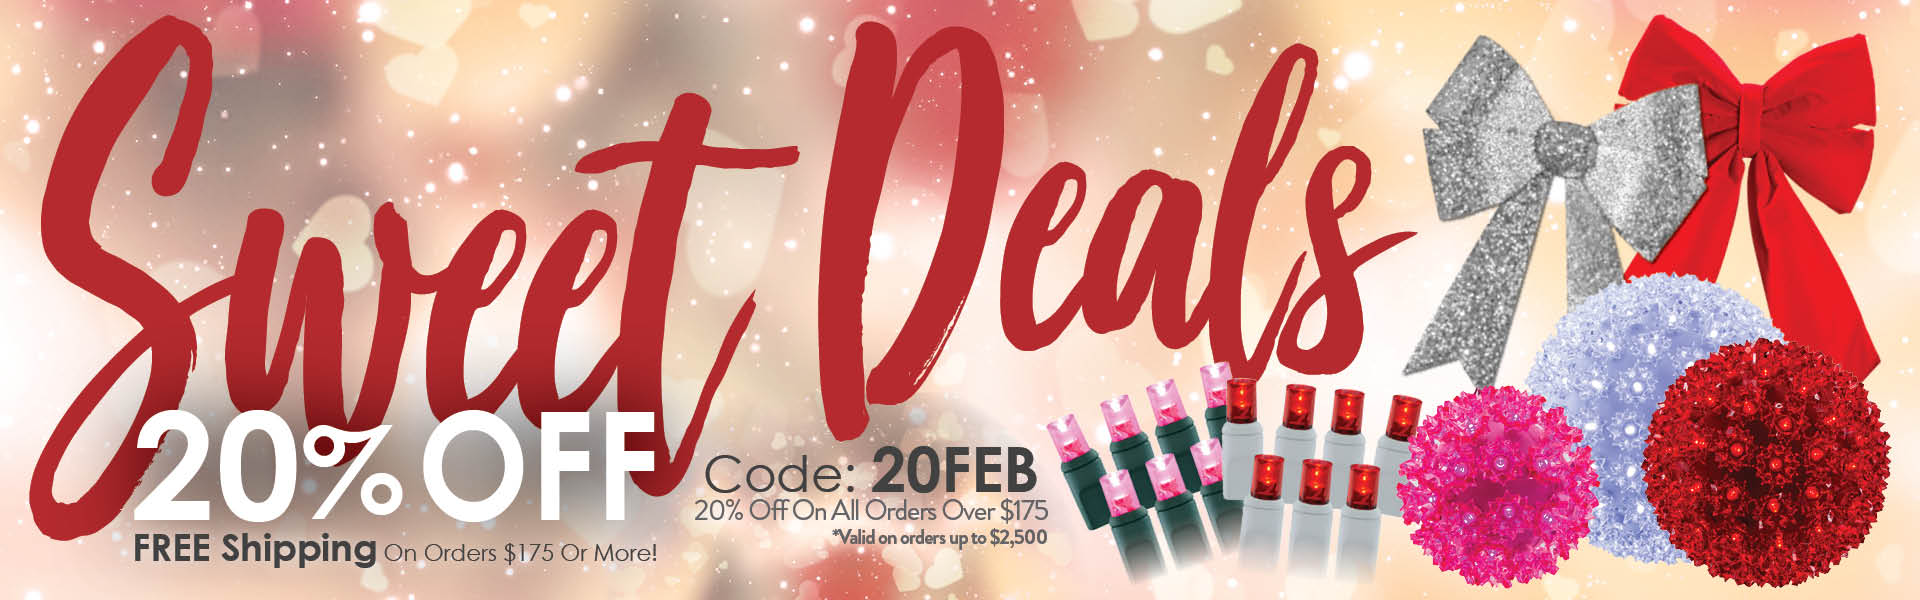 Feb Sale 20% Off on Orders. Free Shipping on Orders of $175 or More